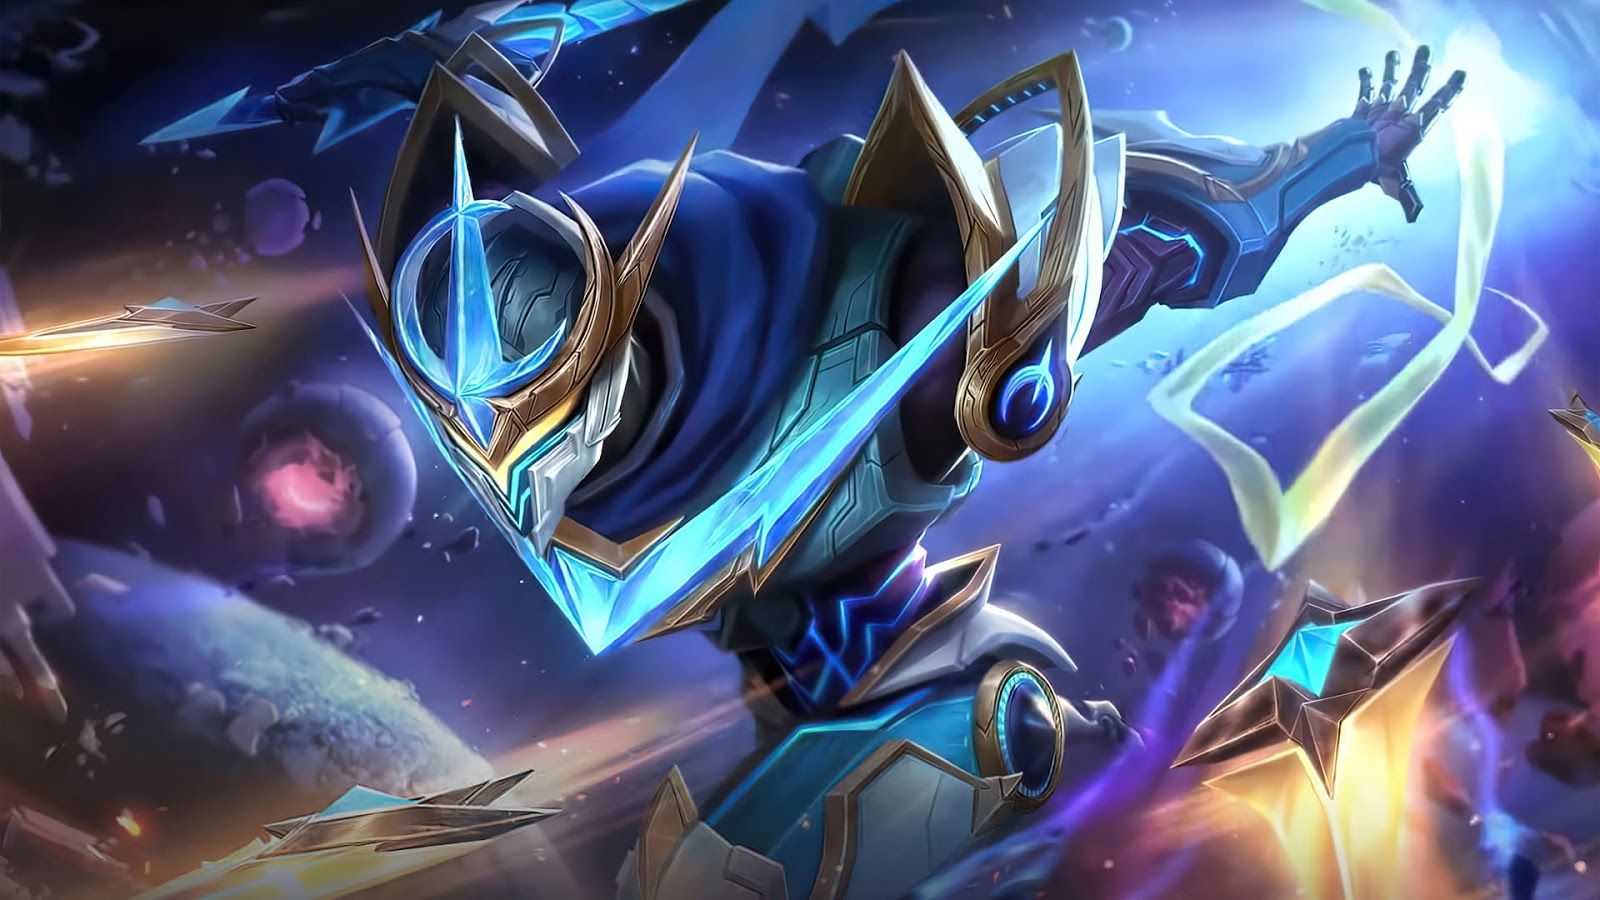 Wallpaper Gusion Cosmic Gleam Skin Mobile Legends HD for PC